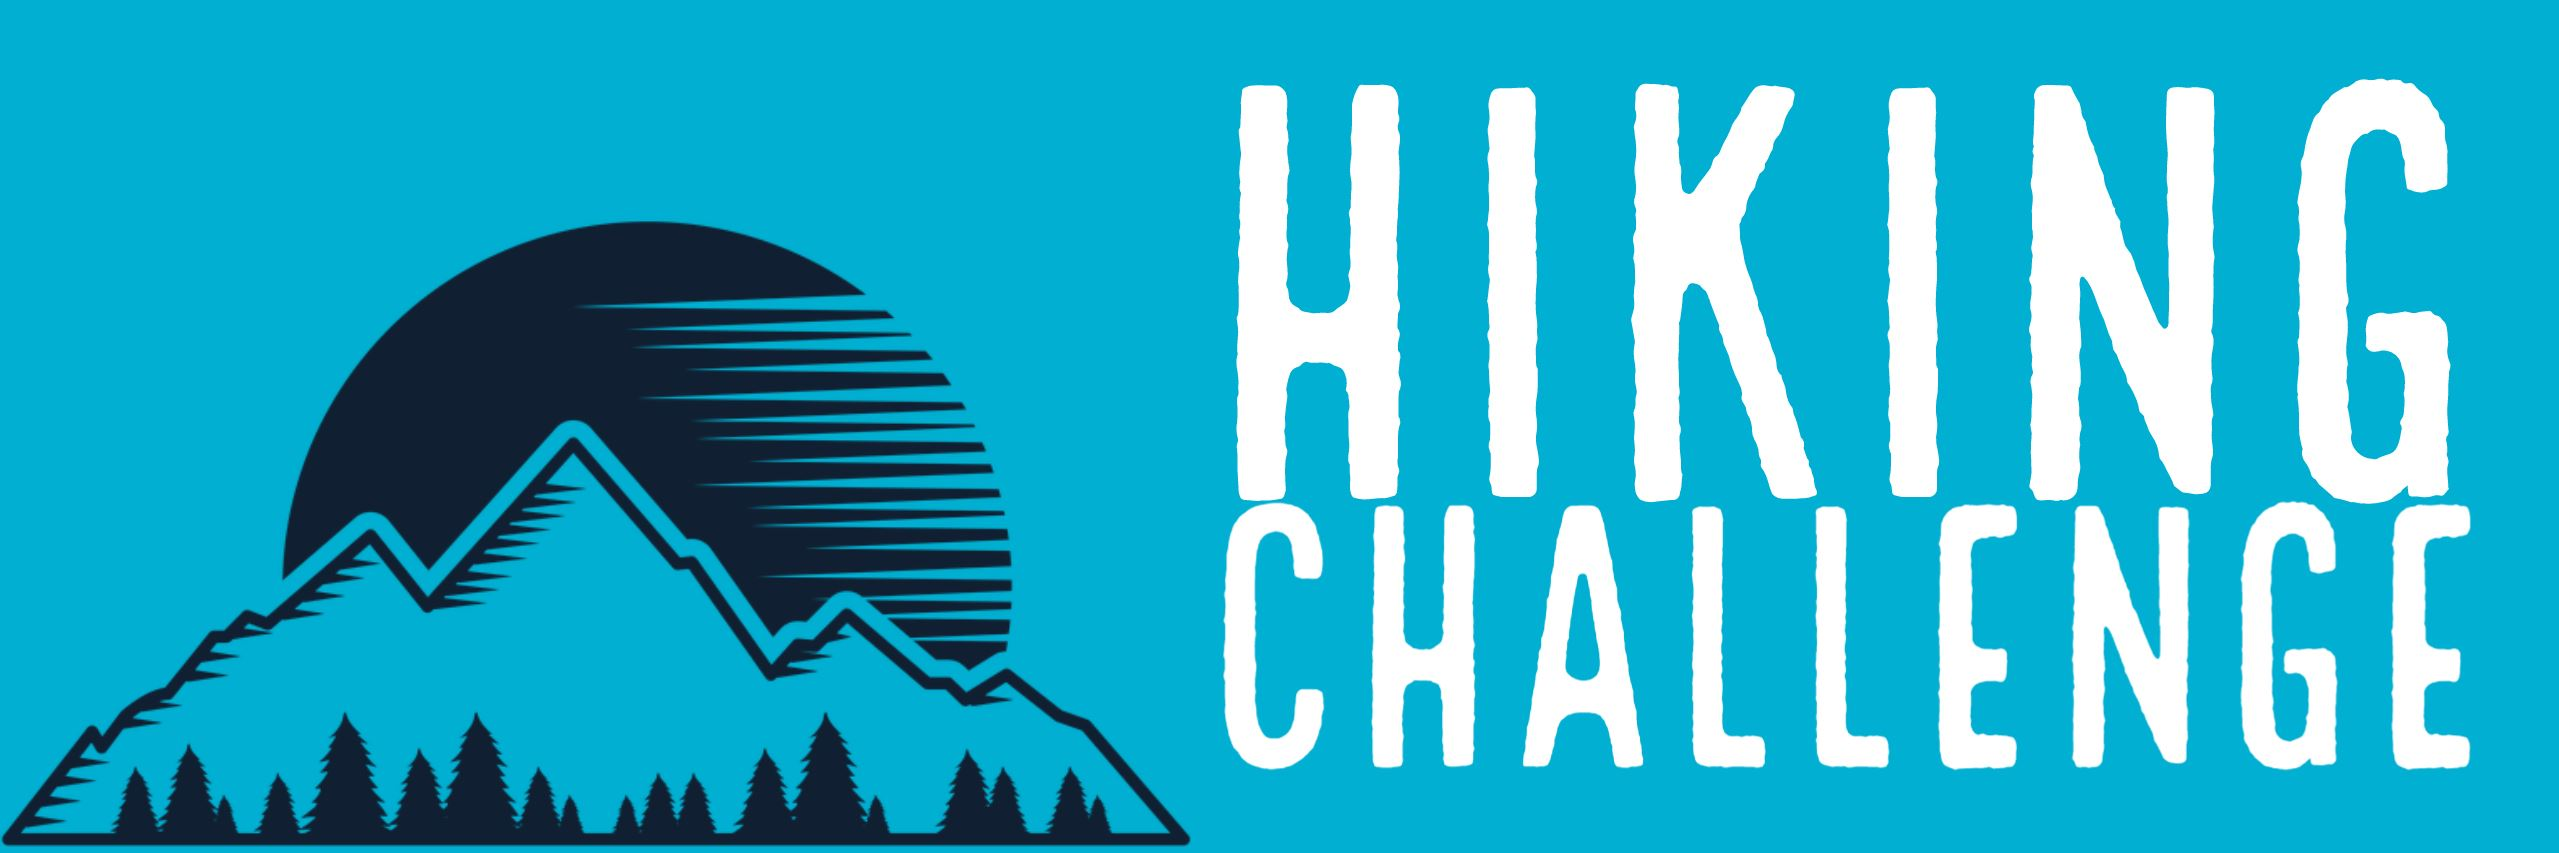 Hiking Banner